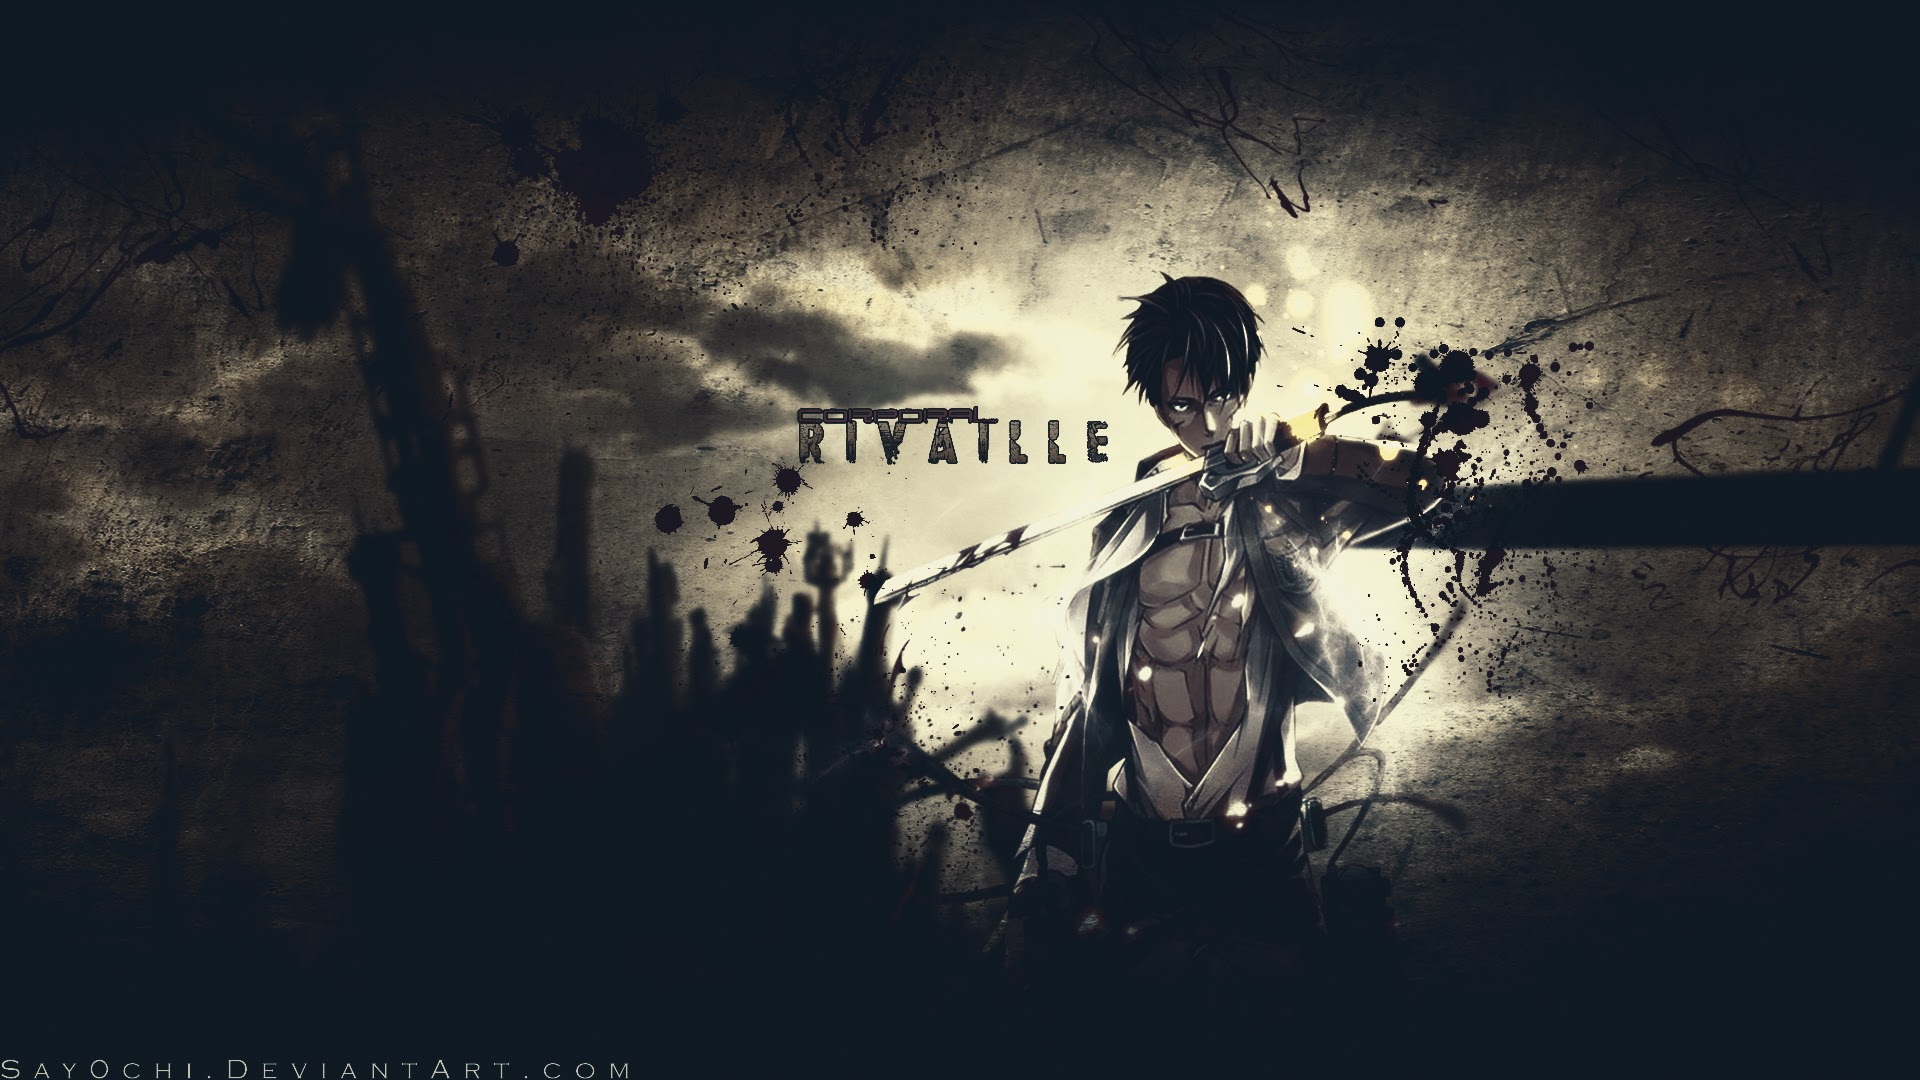 Free Download Top Levi Aot Wallpaper Wallpapers 1920x1080 For Your Desktop Mobile Tablet Explore 50 Aot Levi Wallpaper Snk Wallpaper Captain Levi Wallpaper Attack On Titans Wallpaper